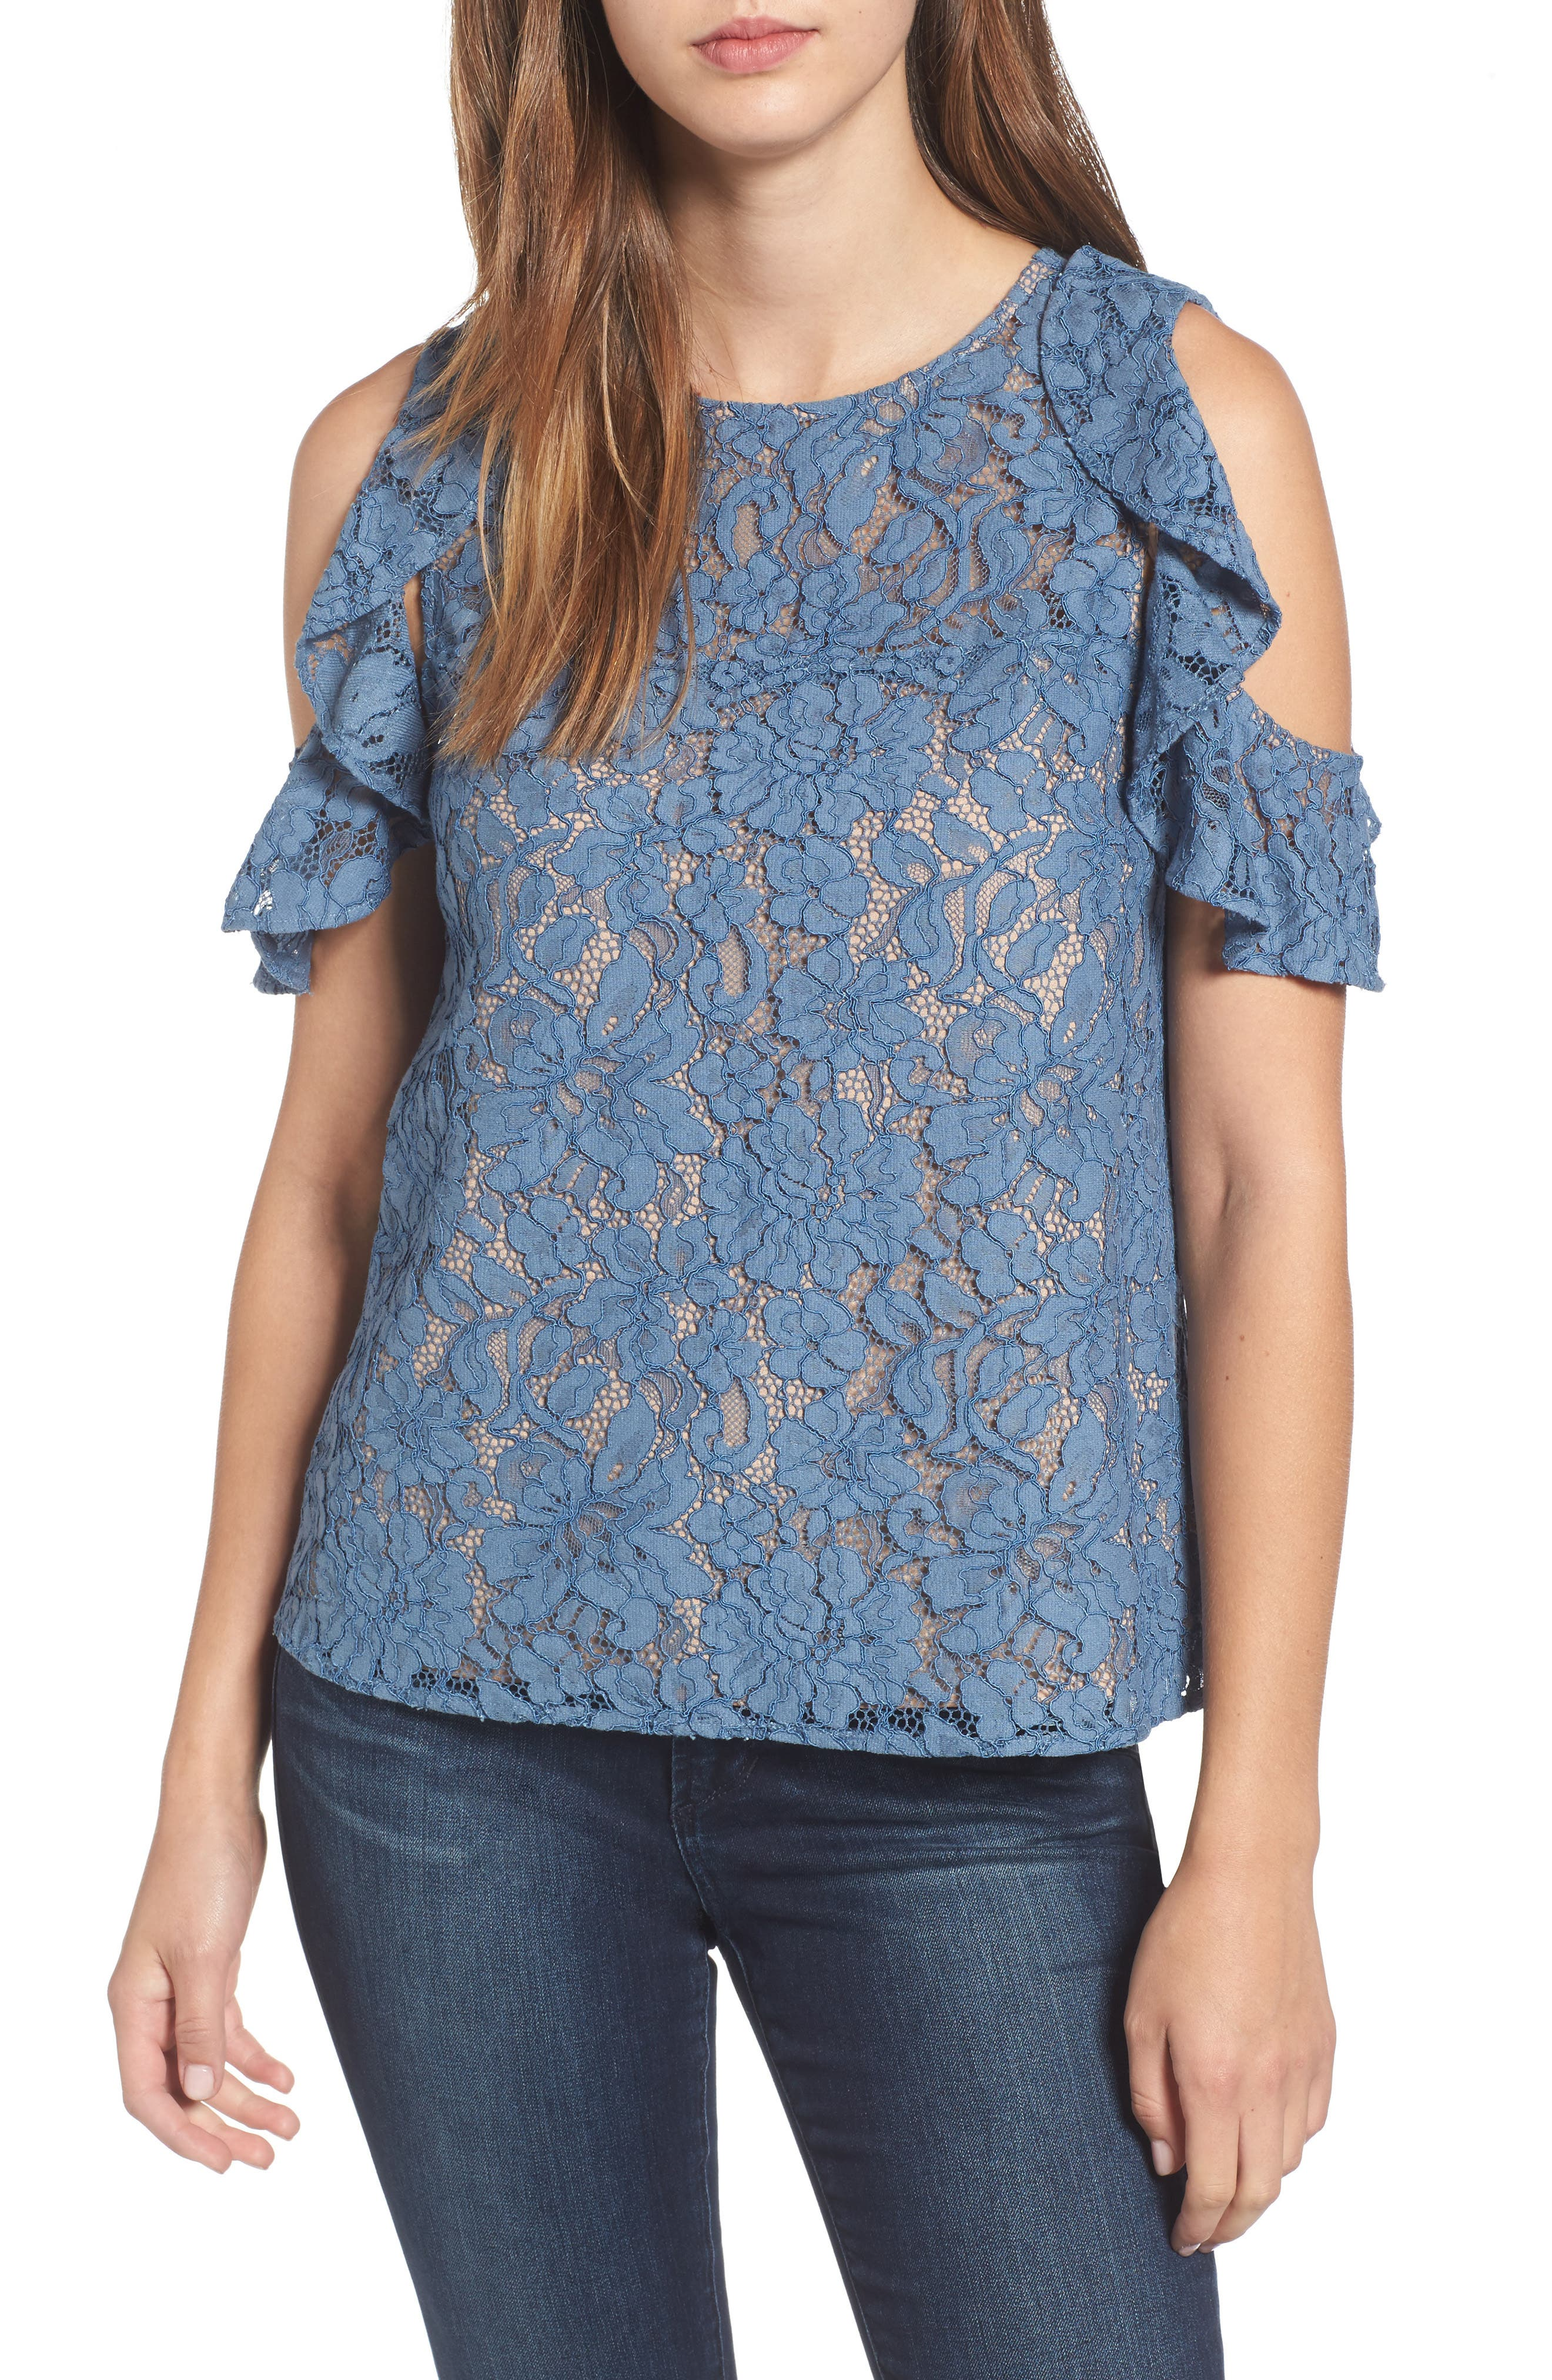 Alternate Image 1 Selected - Wayf Ryder Ruffle Cold Shoulder Lace Top